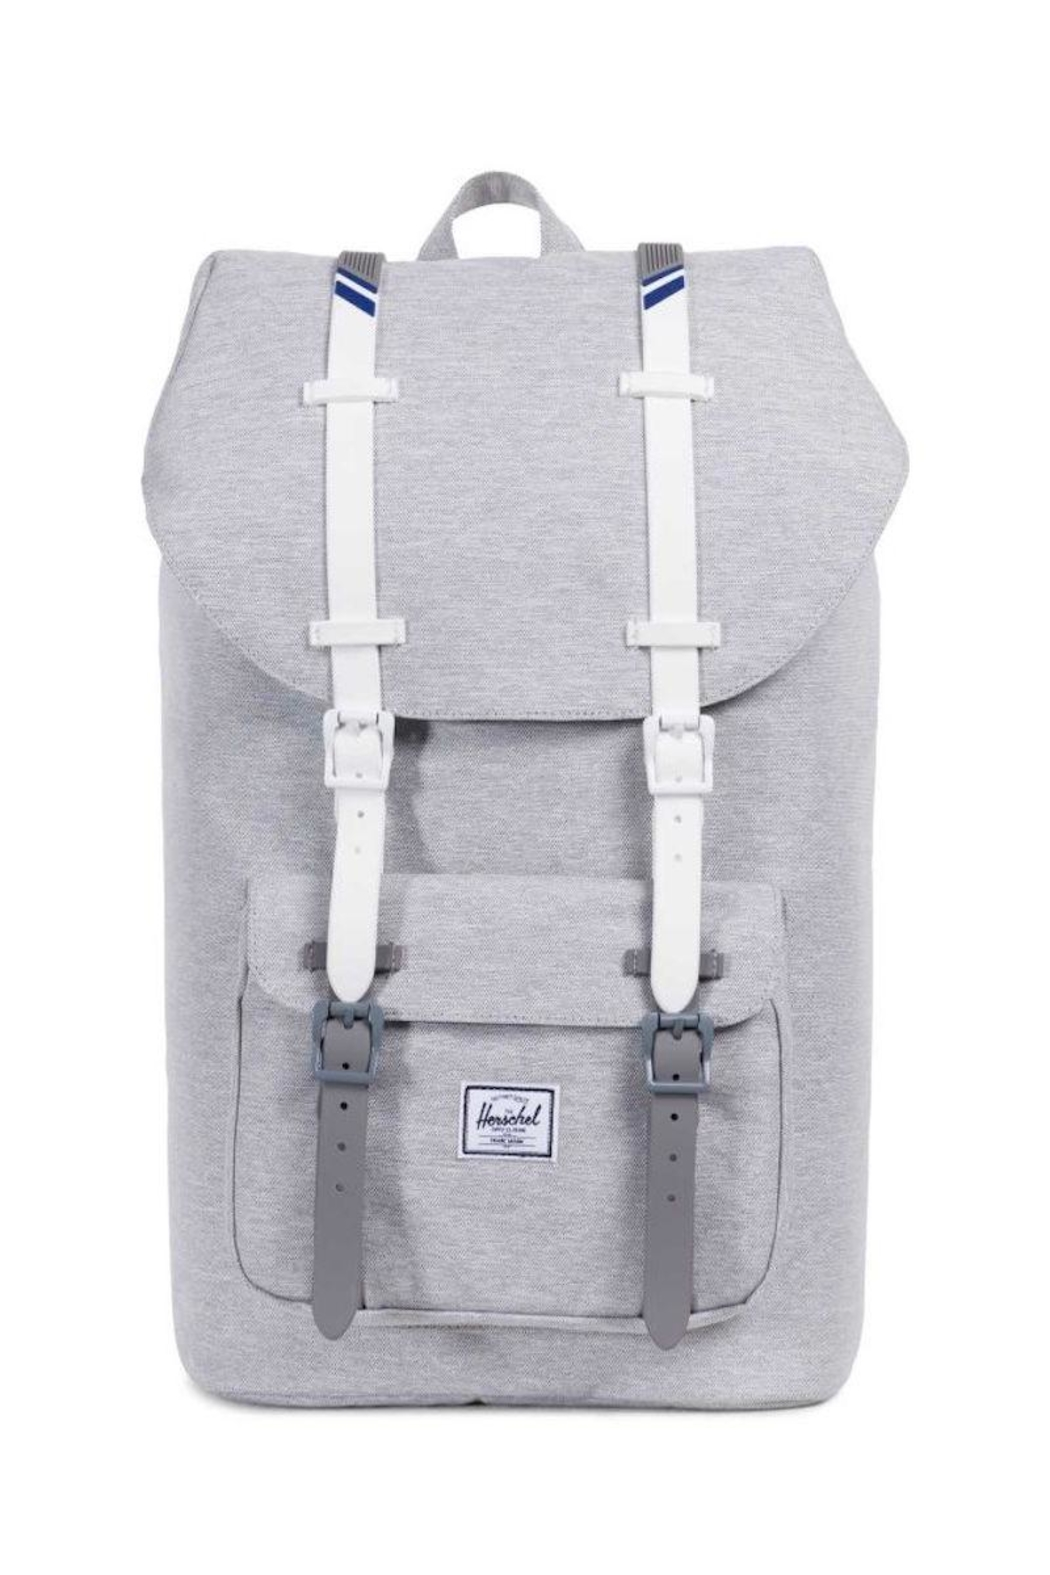 10b0c7220a8 Herschel Supply Co. Little America Backpack from Mississippi by ...